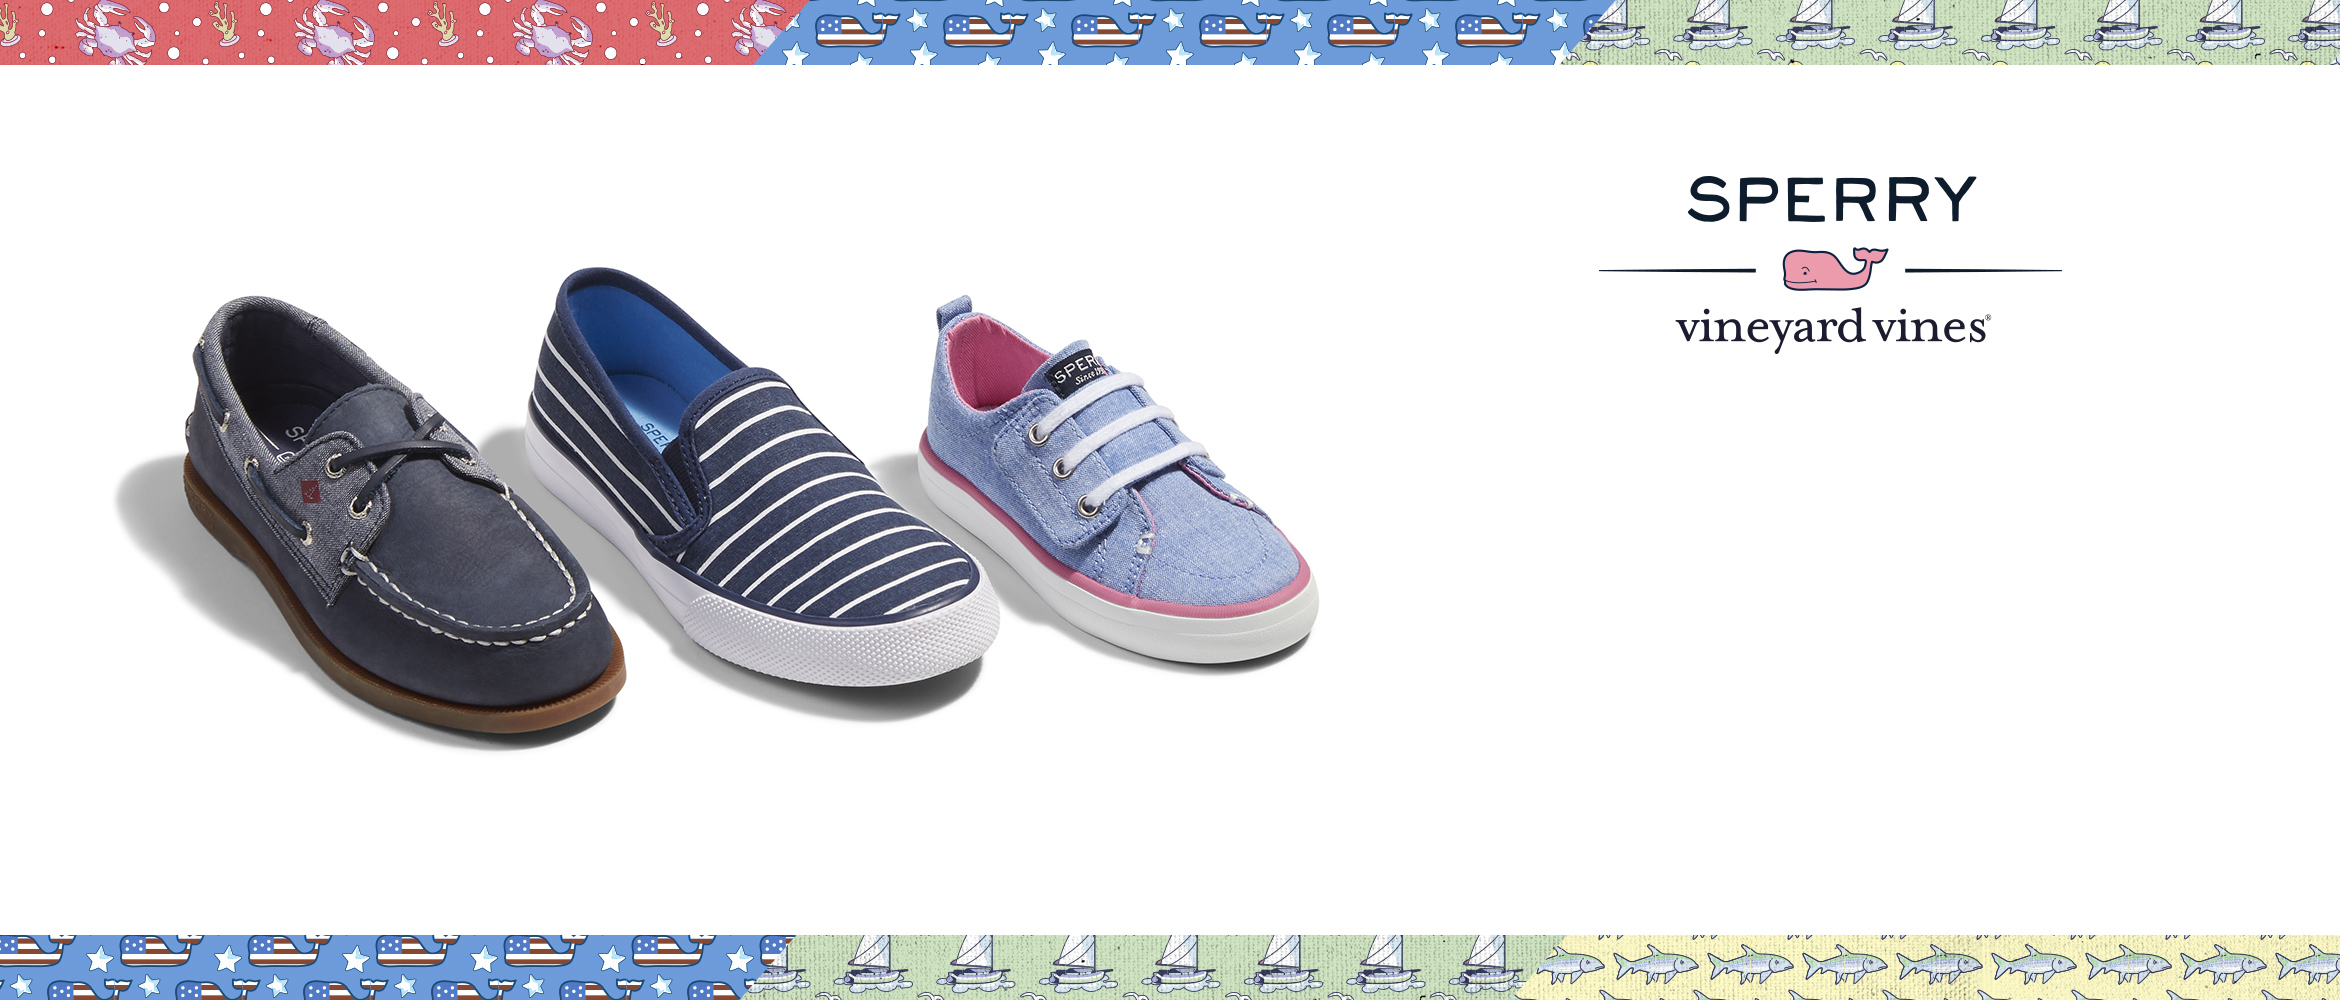 0724821c42 Kids' Shoes & Sneakers for Boys & Girls   Sperry